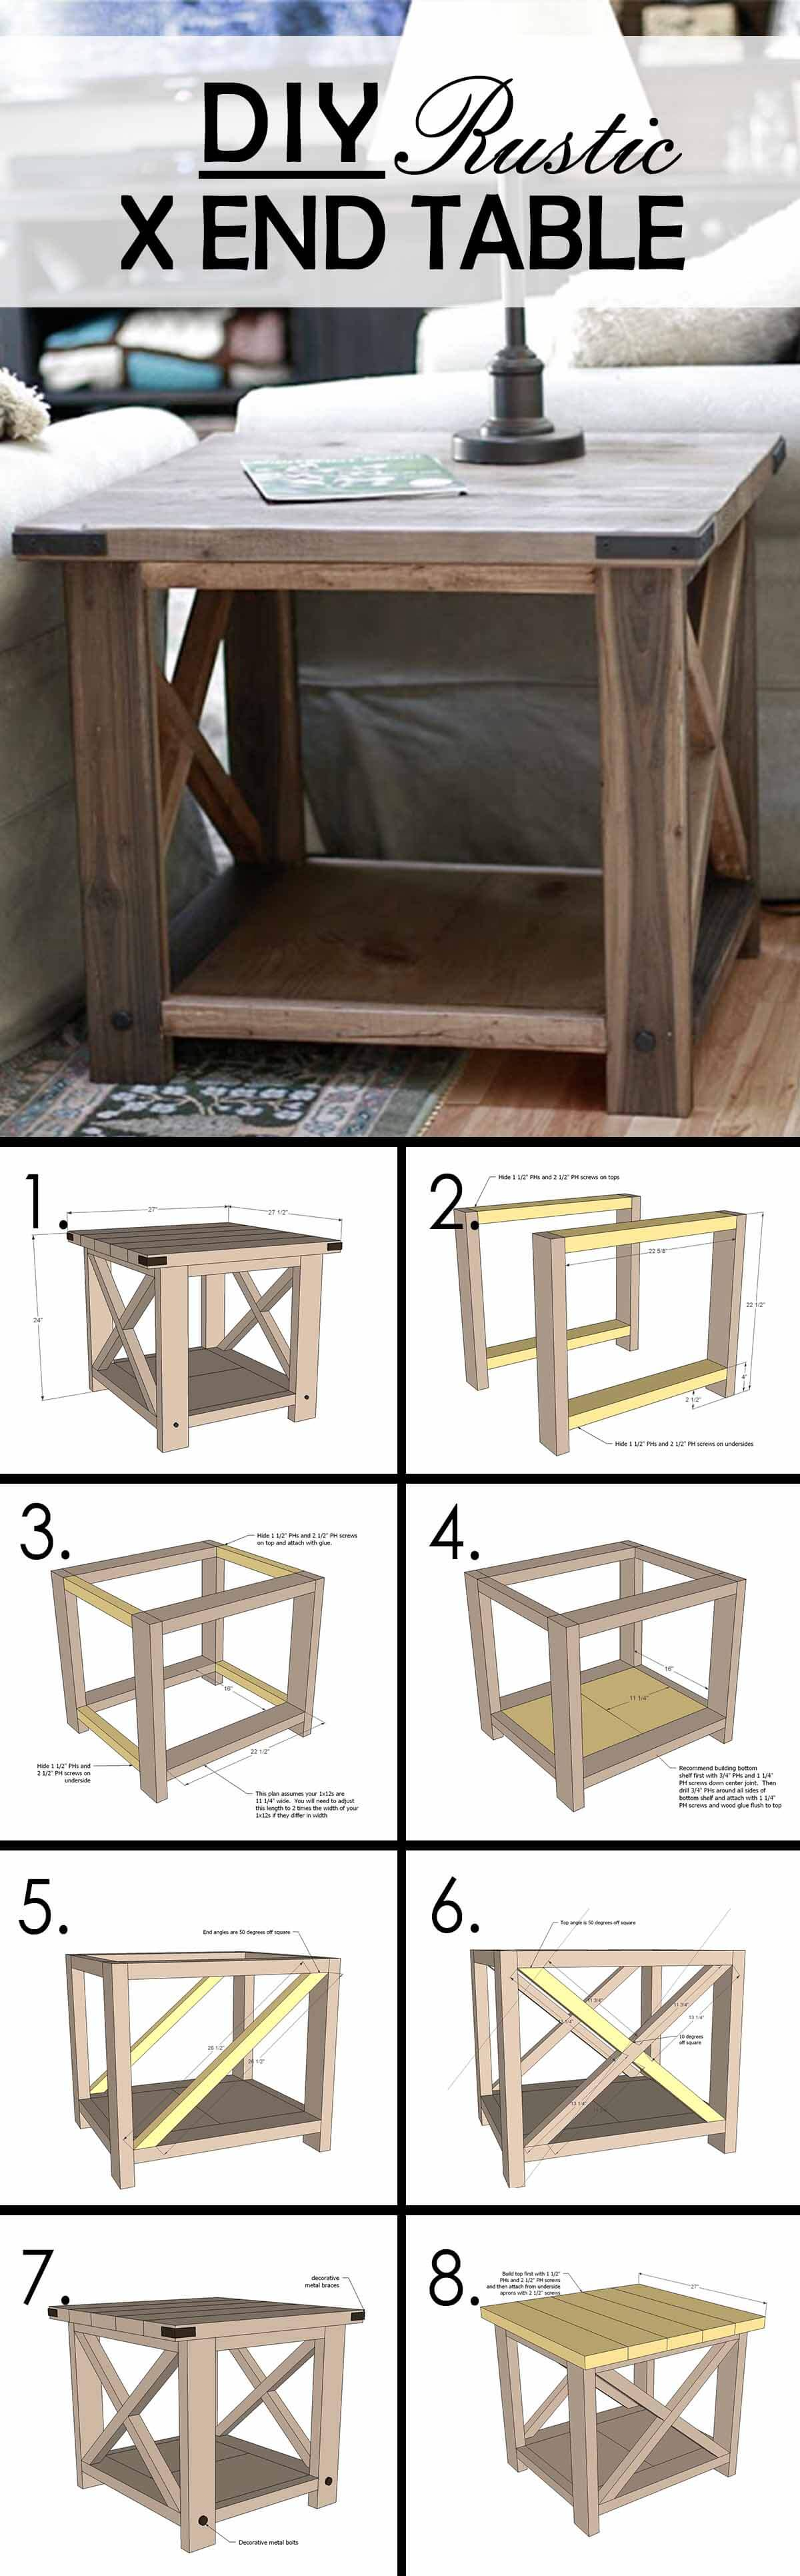 best diy farmhouse coffee table ideas and designs for homebnc white accent build your own rustic cube end tables distressed round side globe lighting ashley leather bean bag